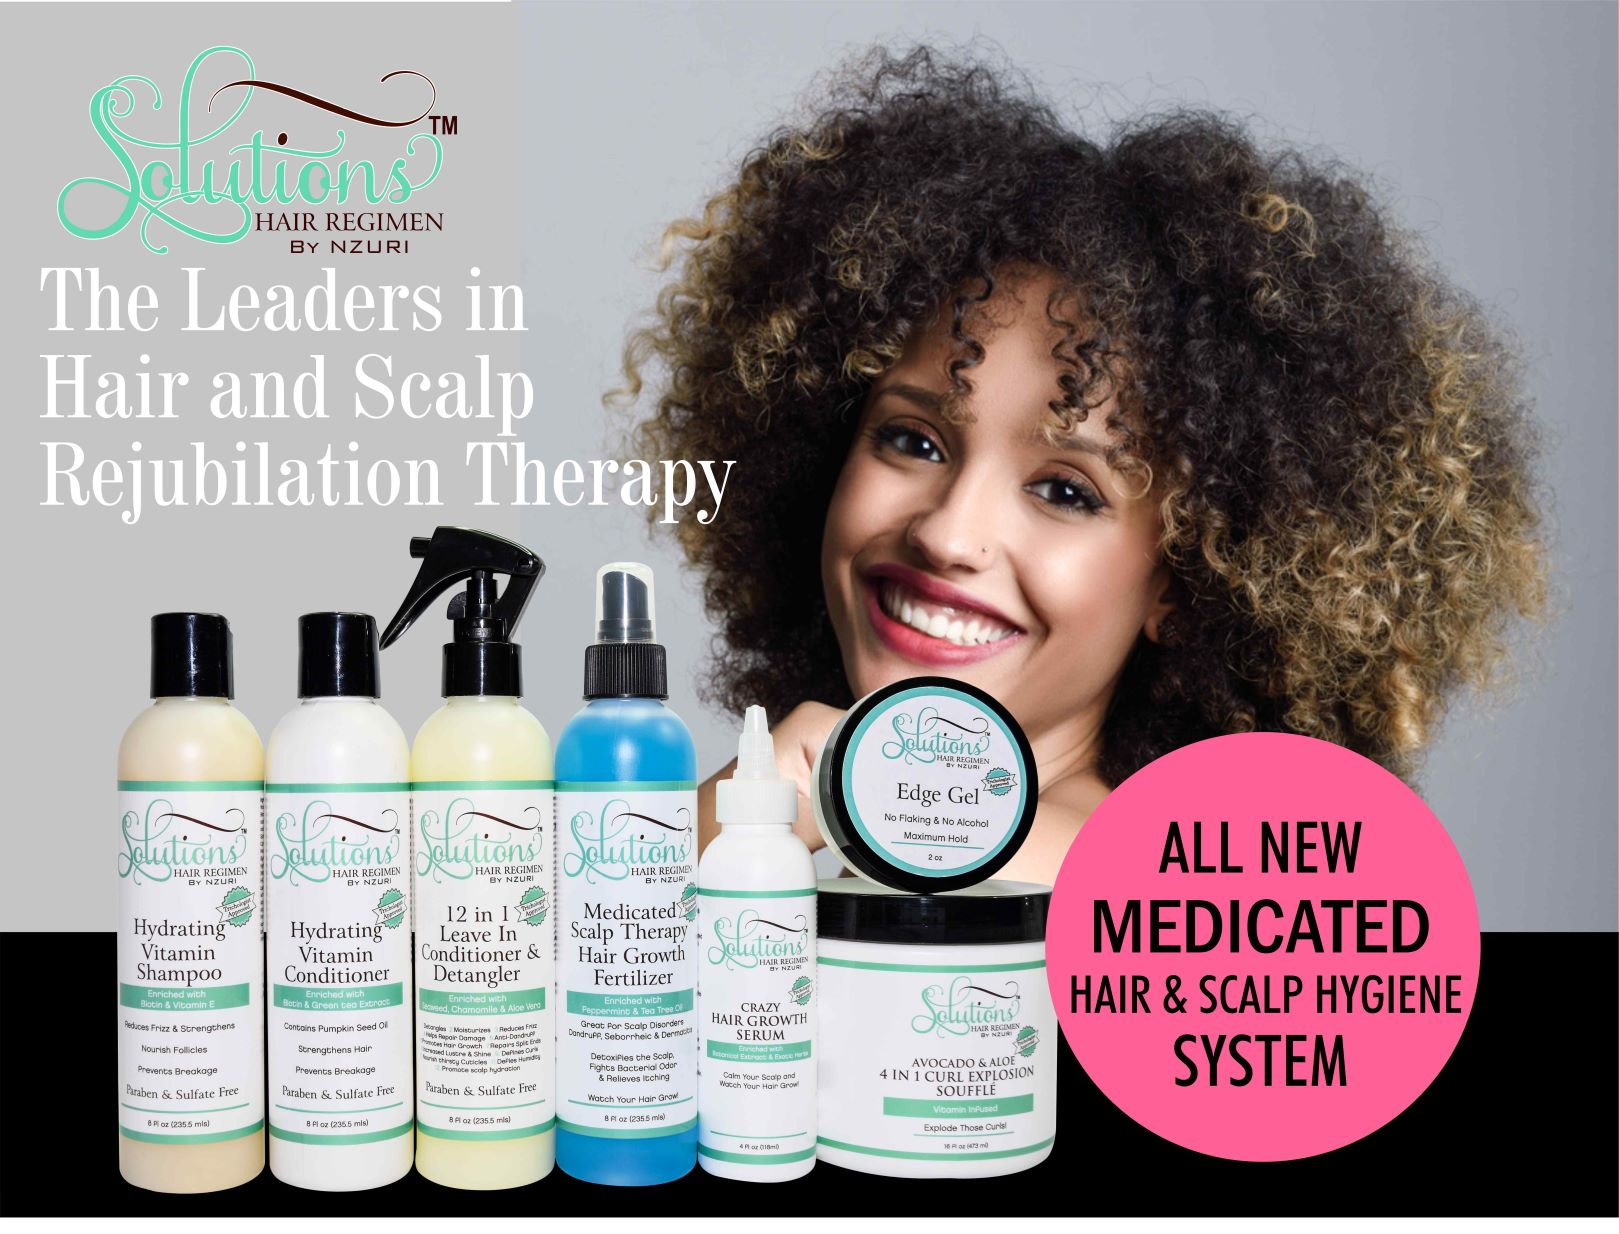 The Leader in Hair and Scalp Re-jubilation Therapy